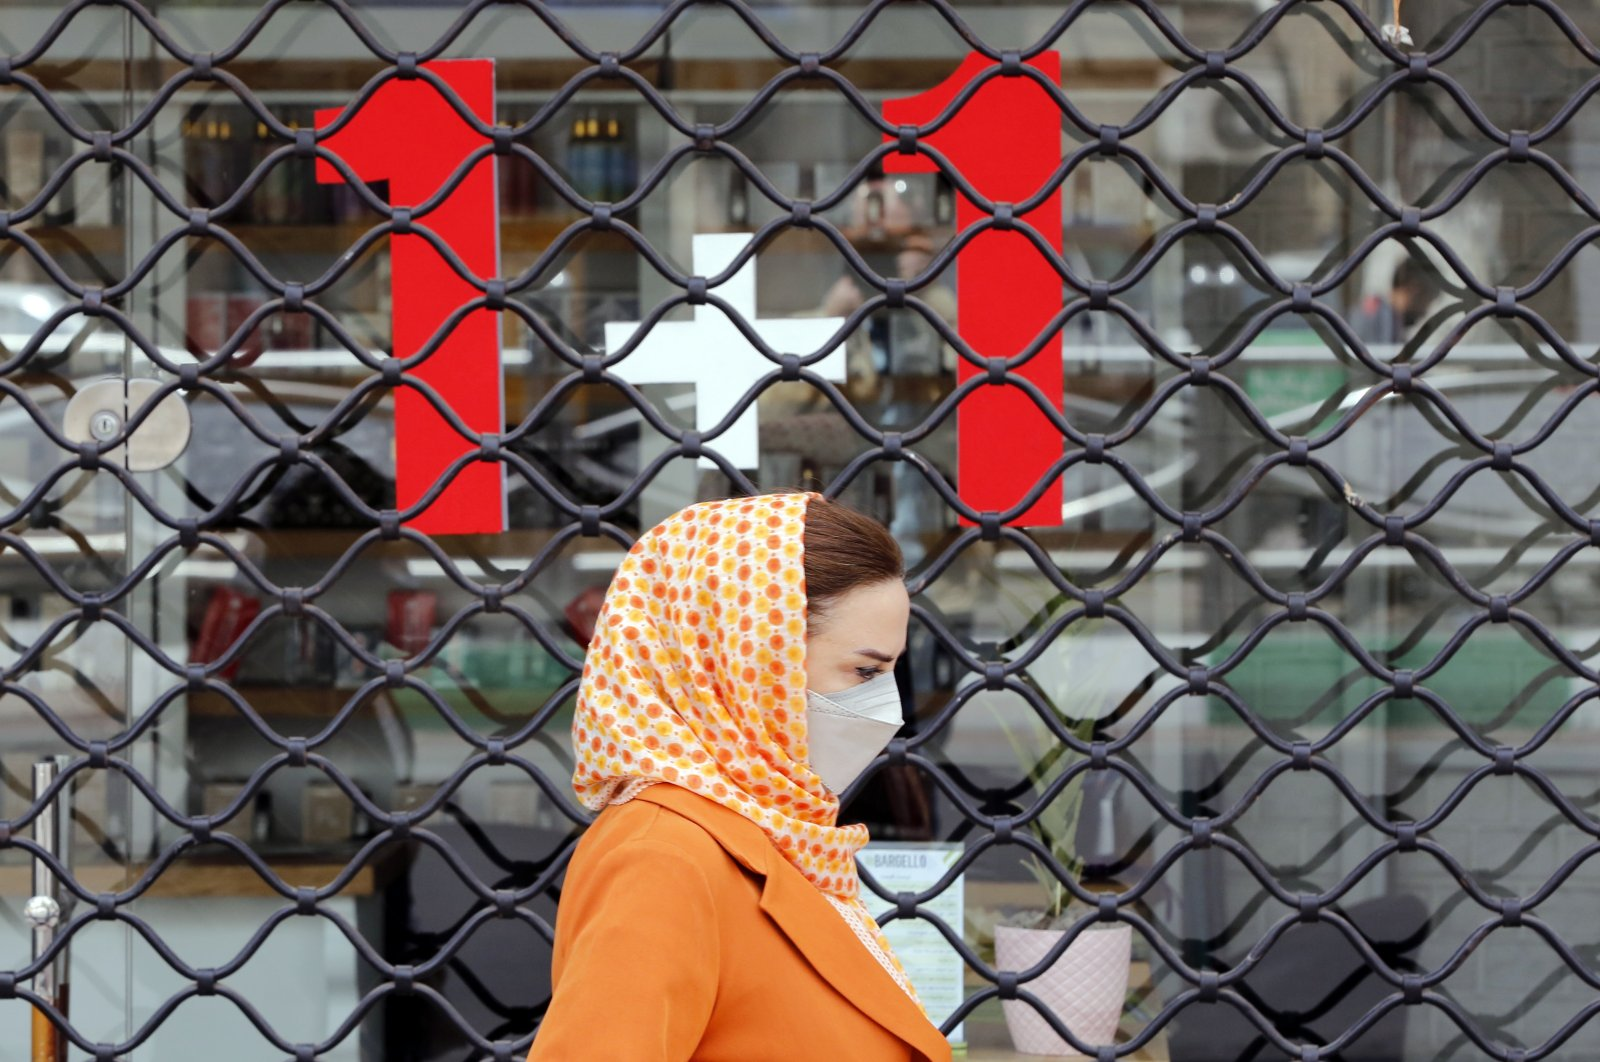 An Iranian woman wearing a face mask walks next to closed shops in a street in Tehran, Iran, April 10, 2021. (EPA Photo)